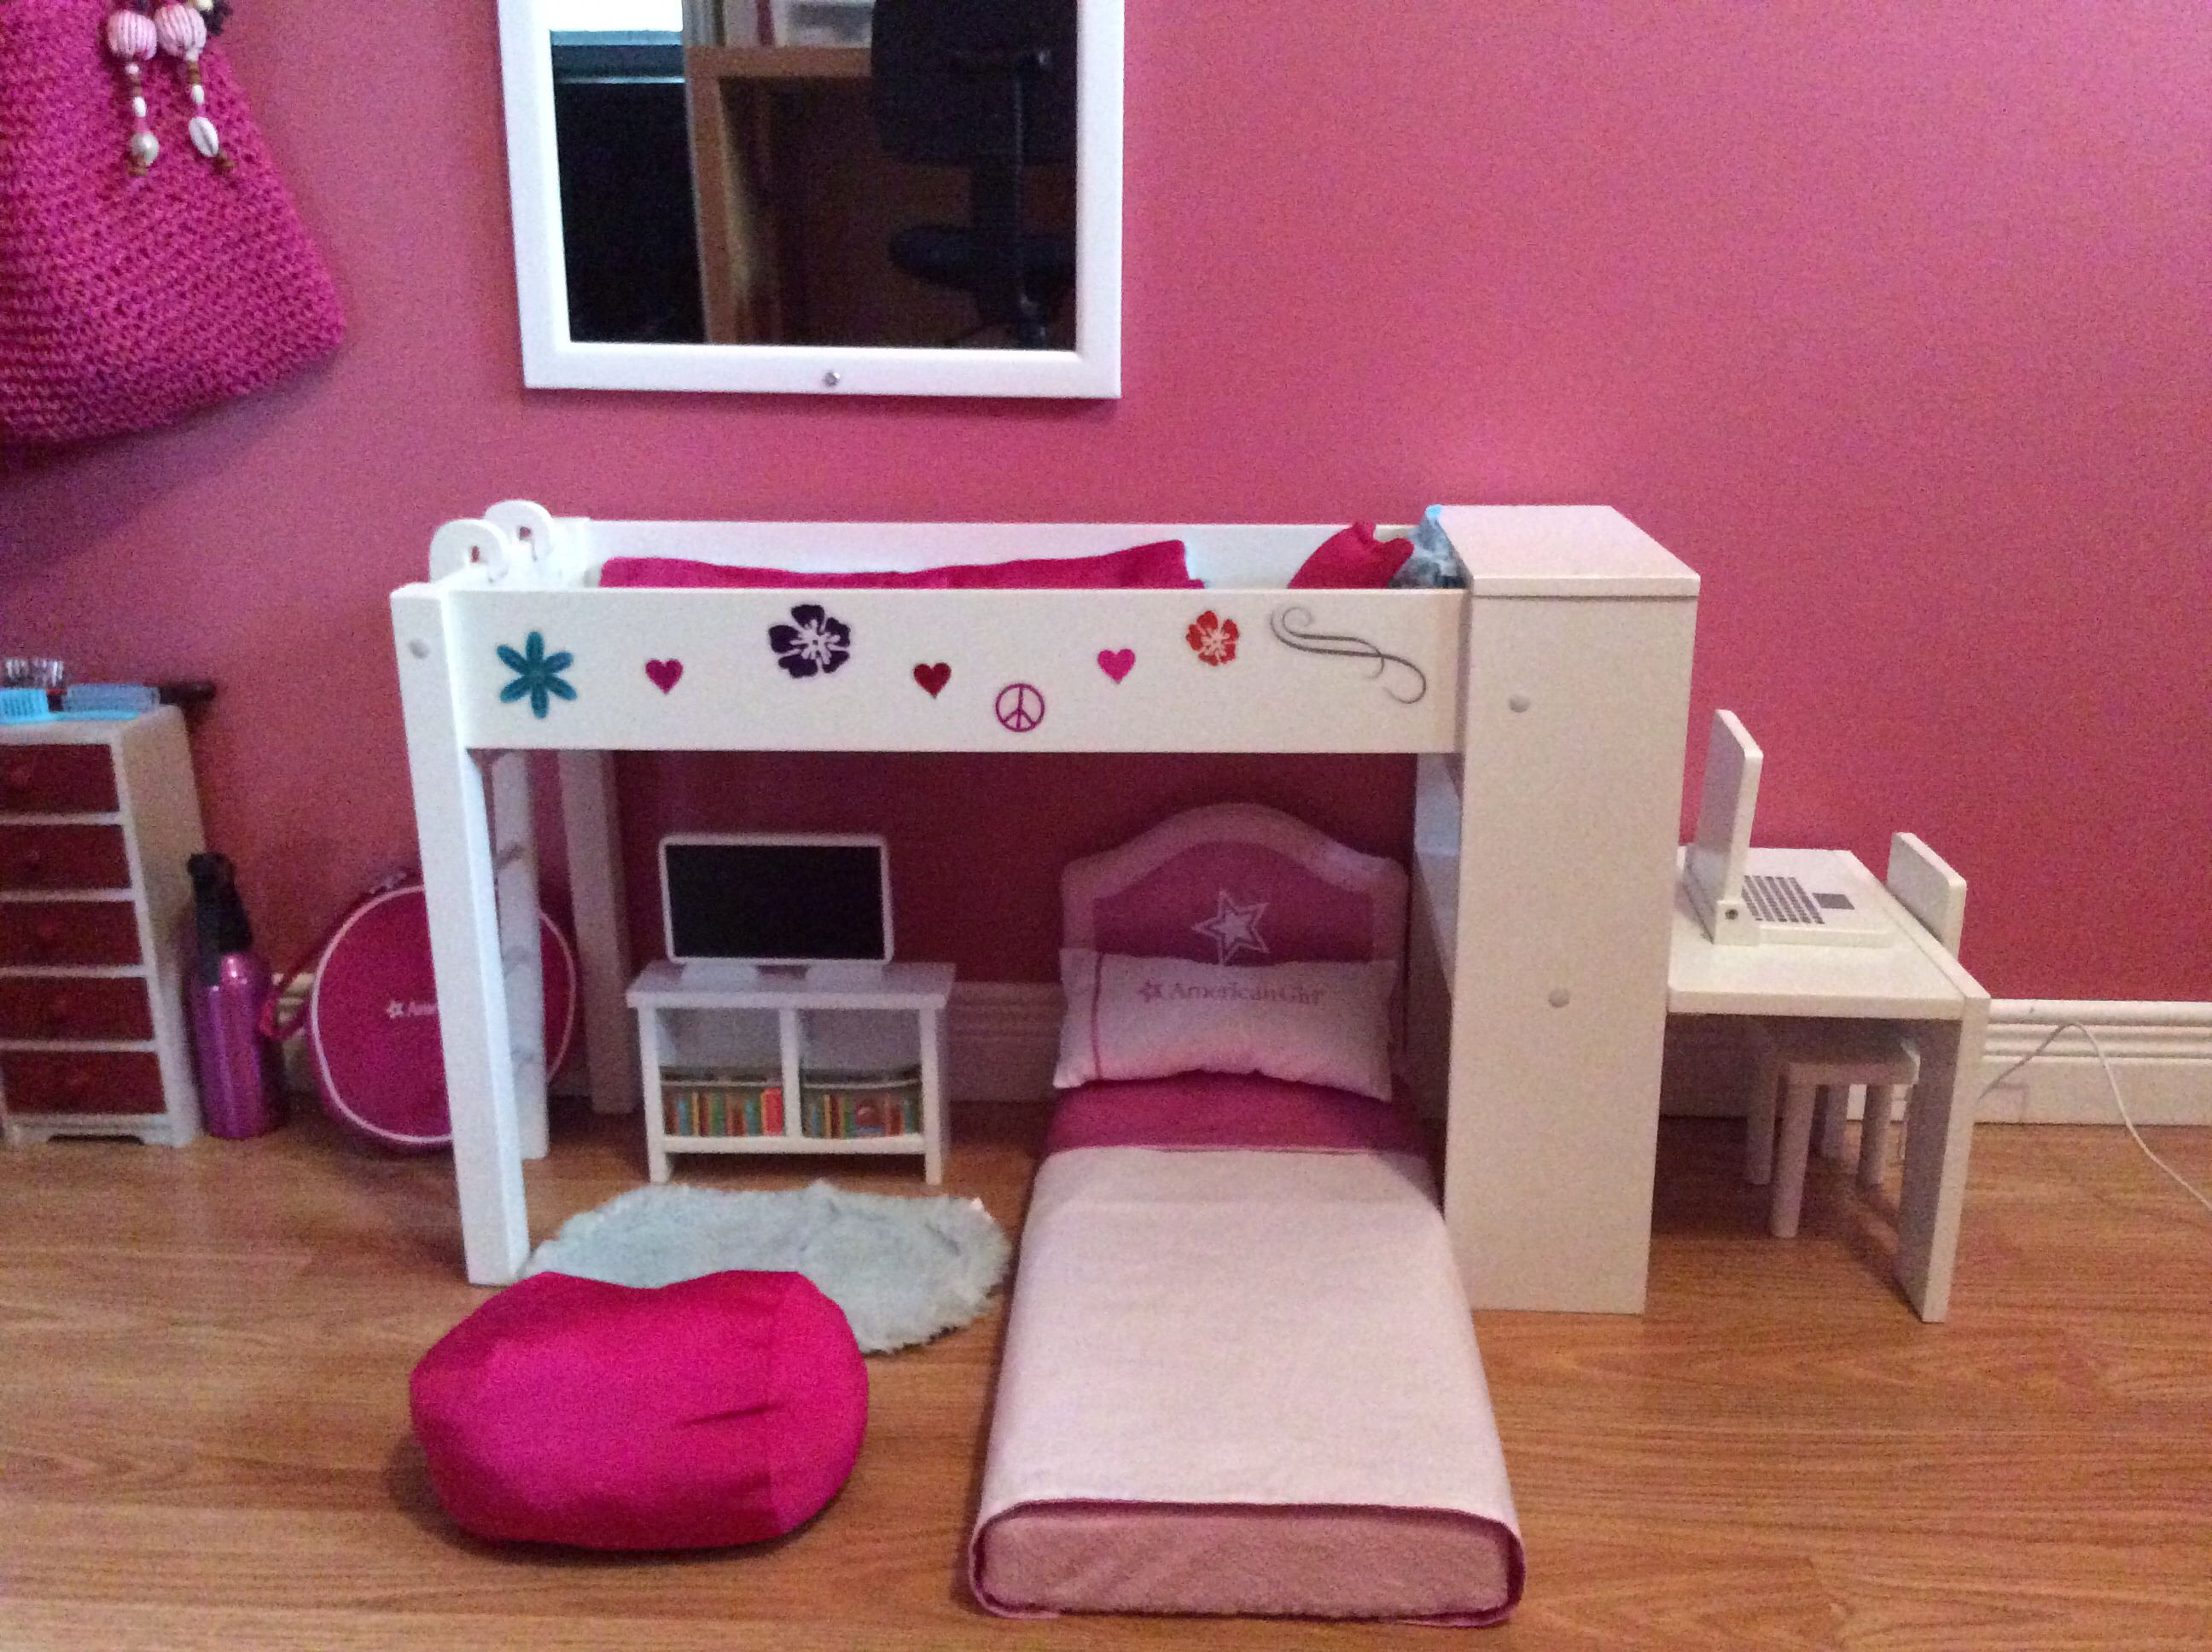 Journey Girl Bunk Bed Set And Bedroom Dolls For My